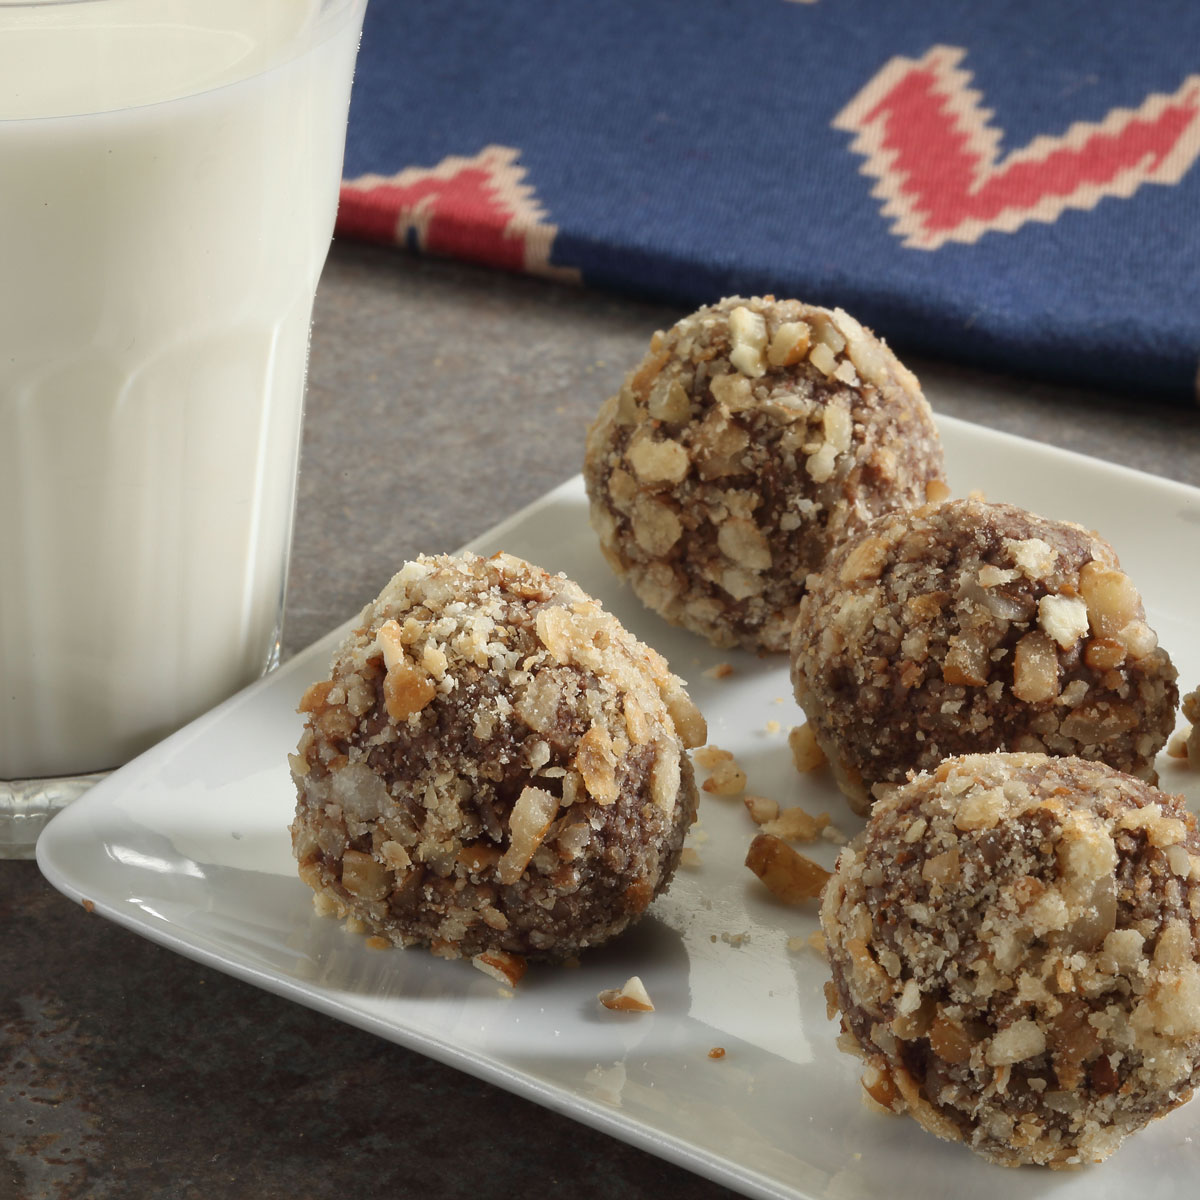 Pecan Pie Truffles with a glass of milk on the side